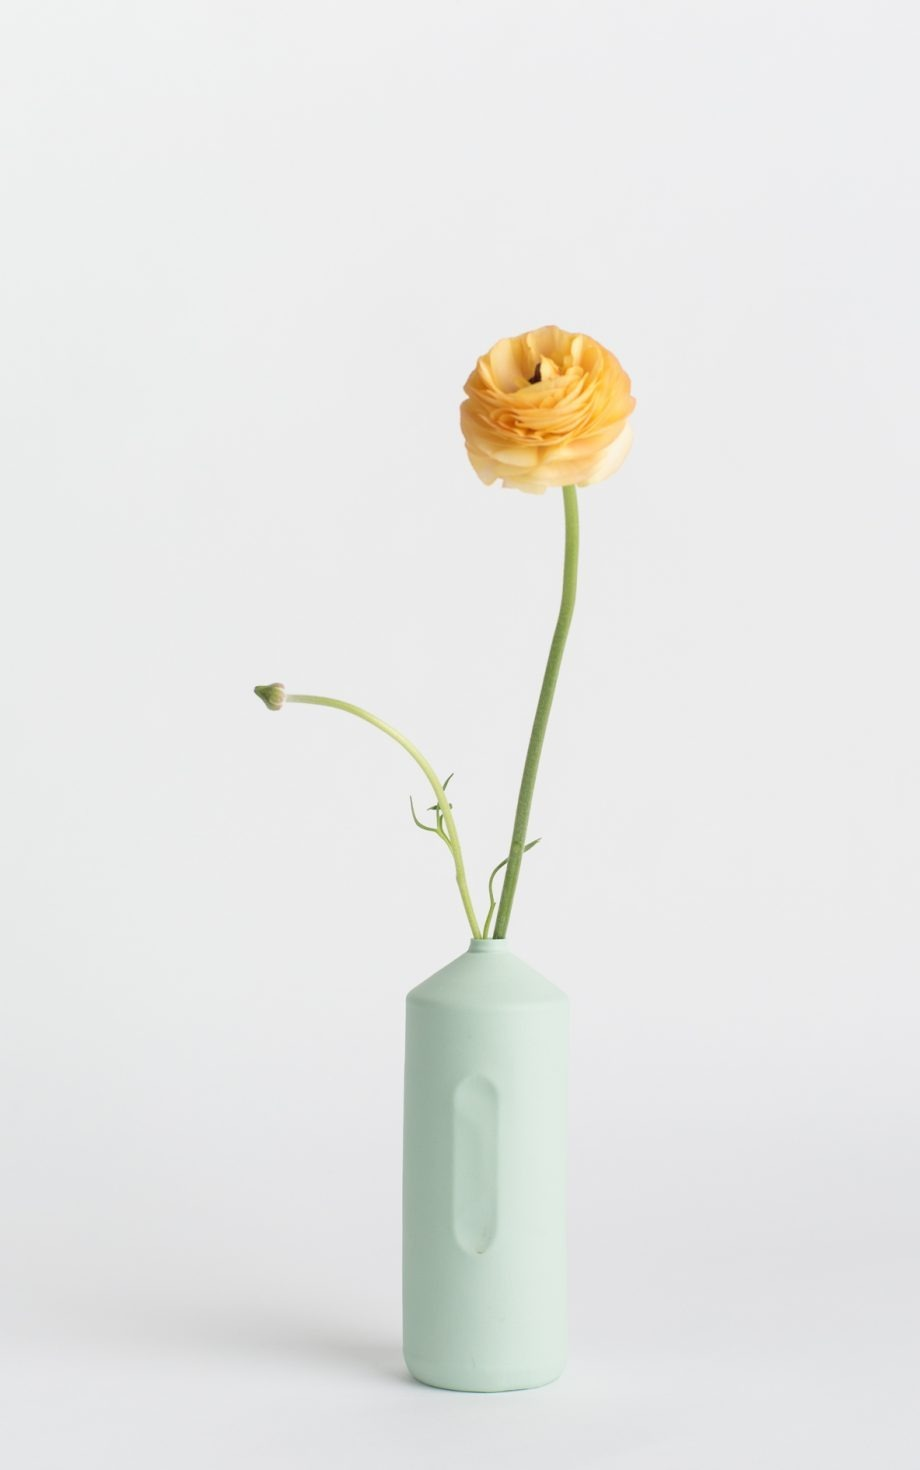 bottle vase #2 mint with flower